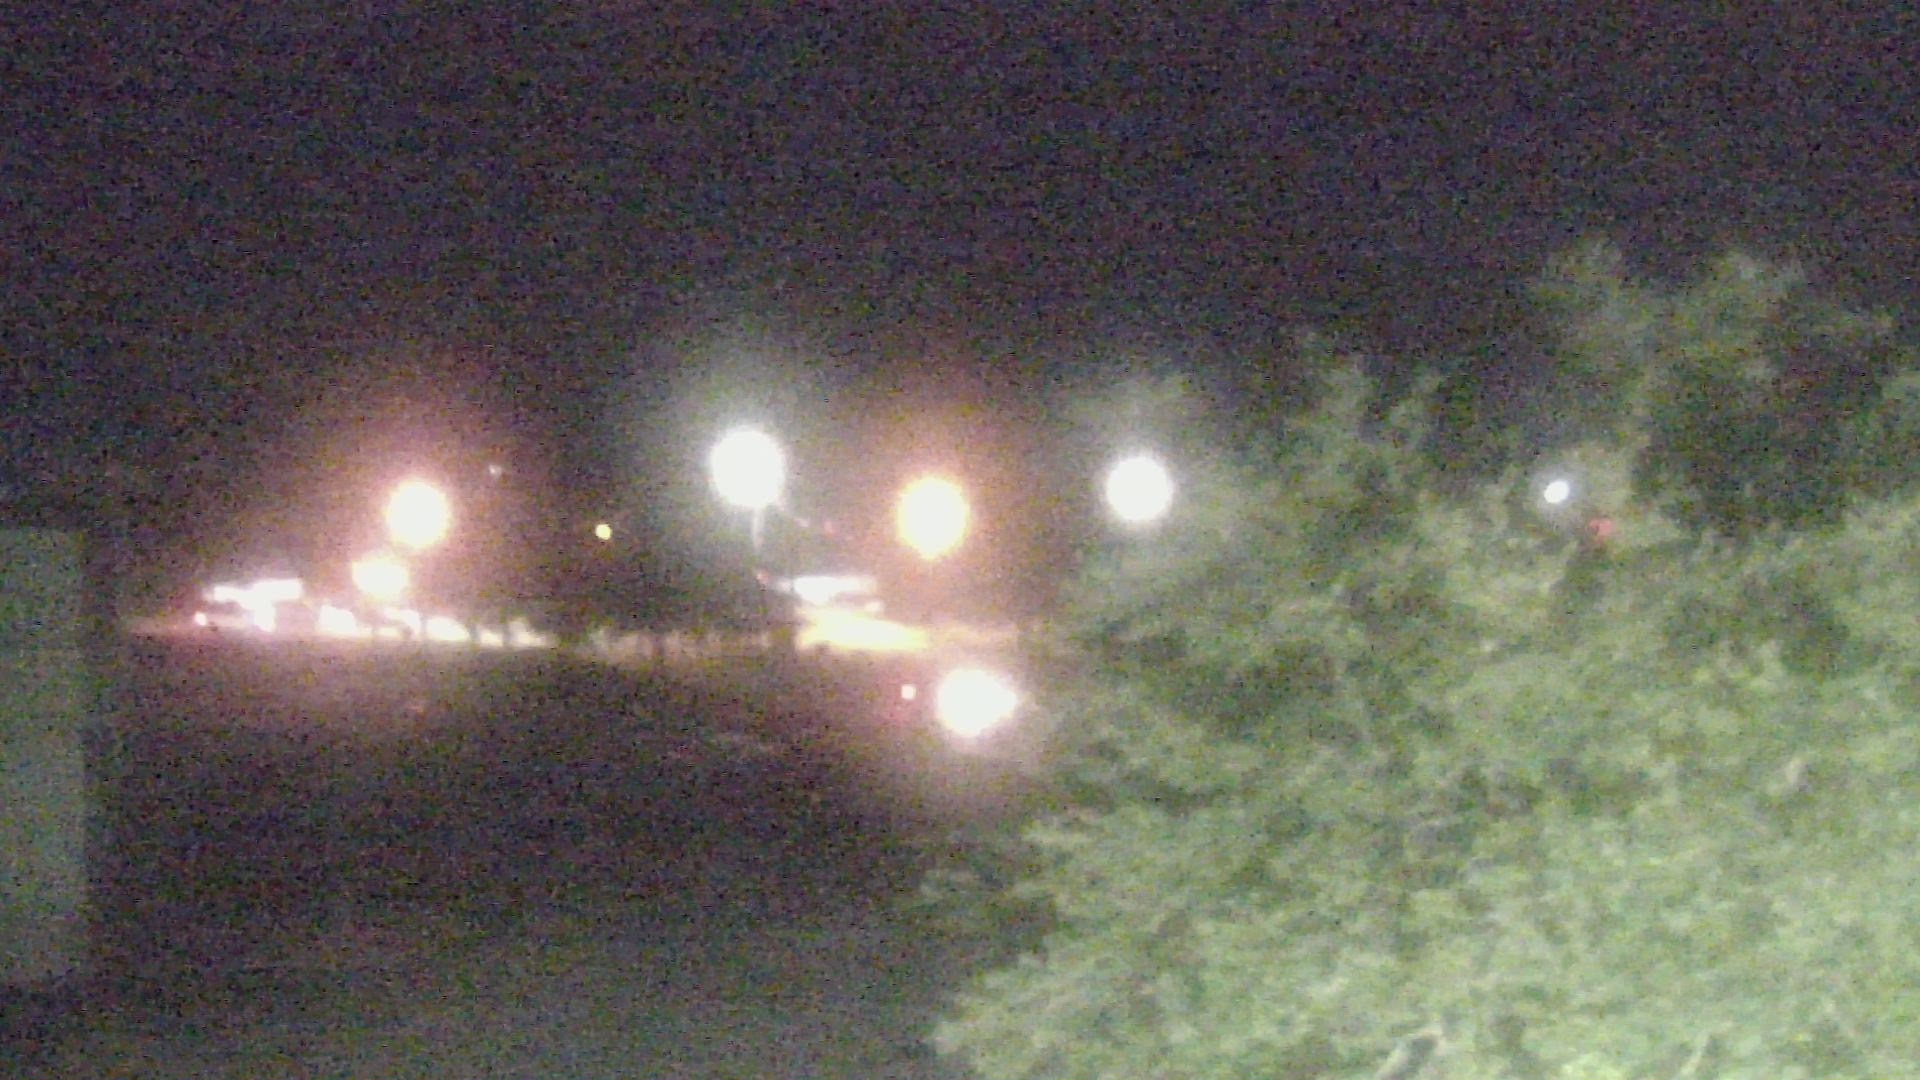 Live Camera from City of League City Fire Station 4, League City, TX 77573